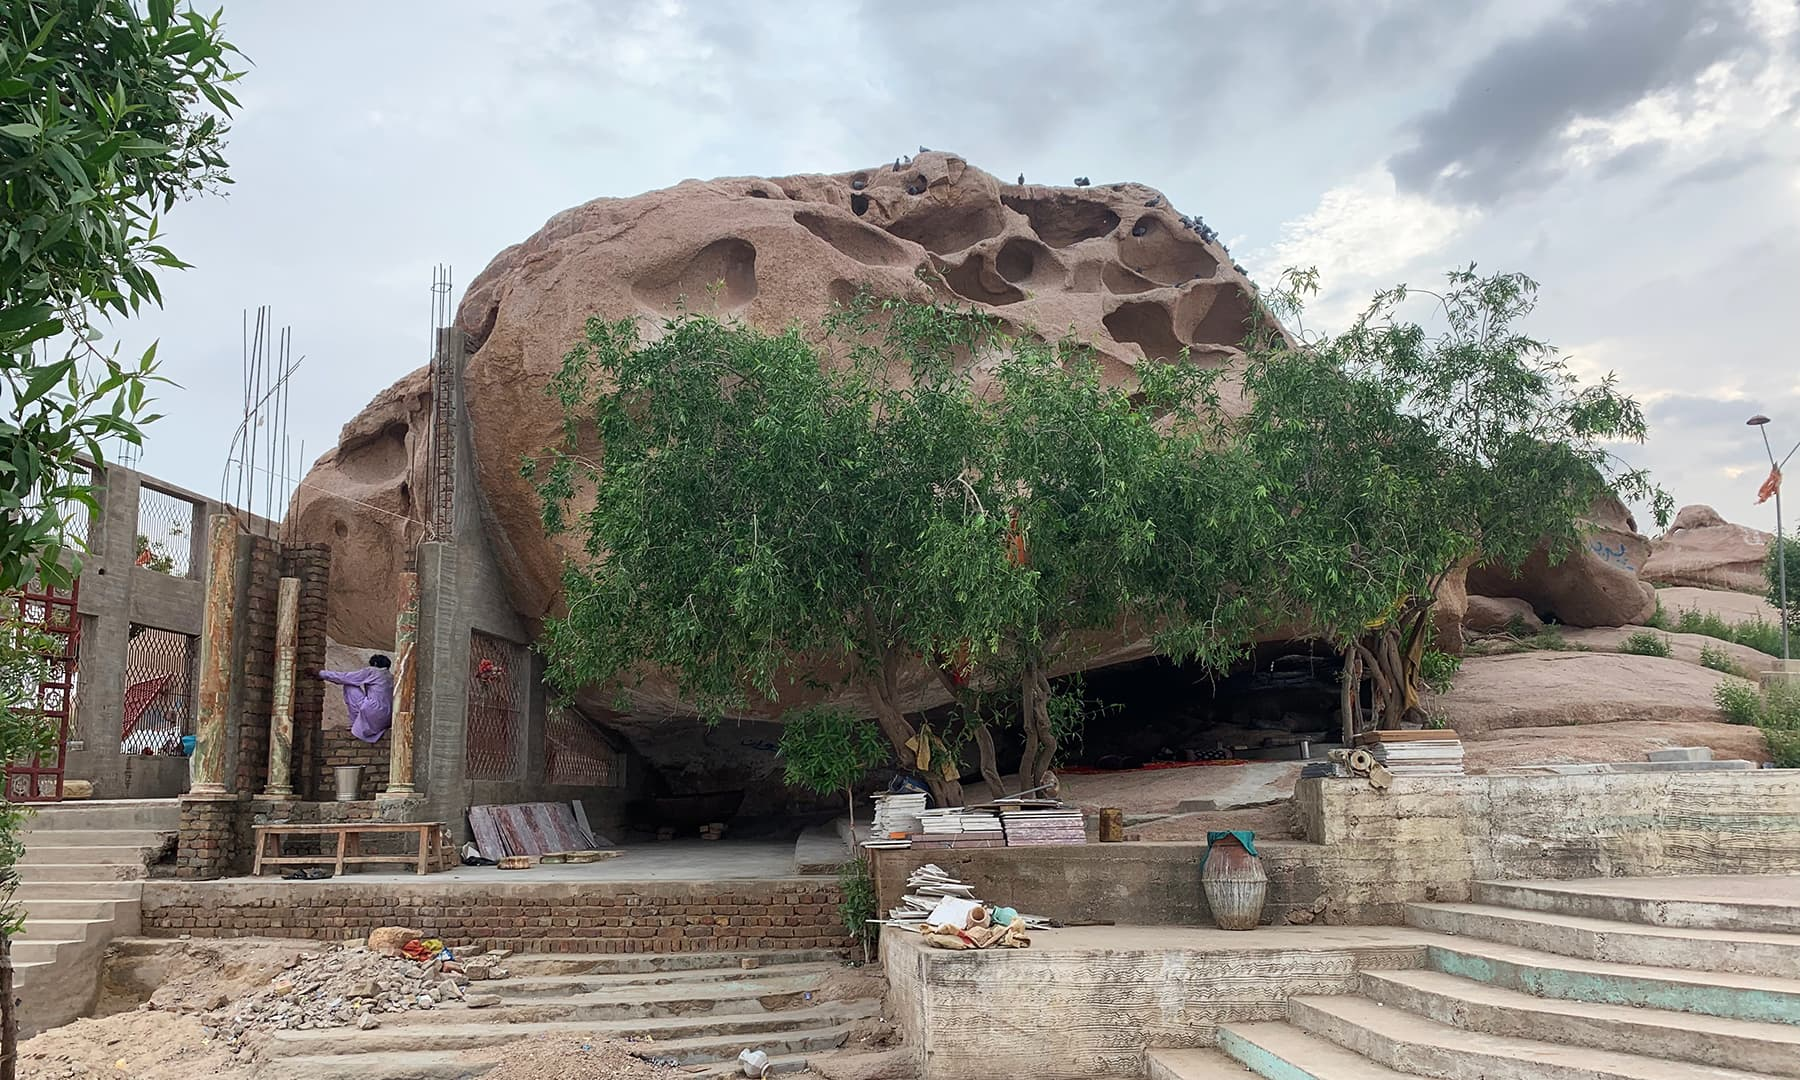 Trees and shrubs grow outside and ancient Hindu temple in Churio area of Nagarparkar. — Photo by author